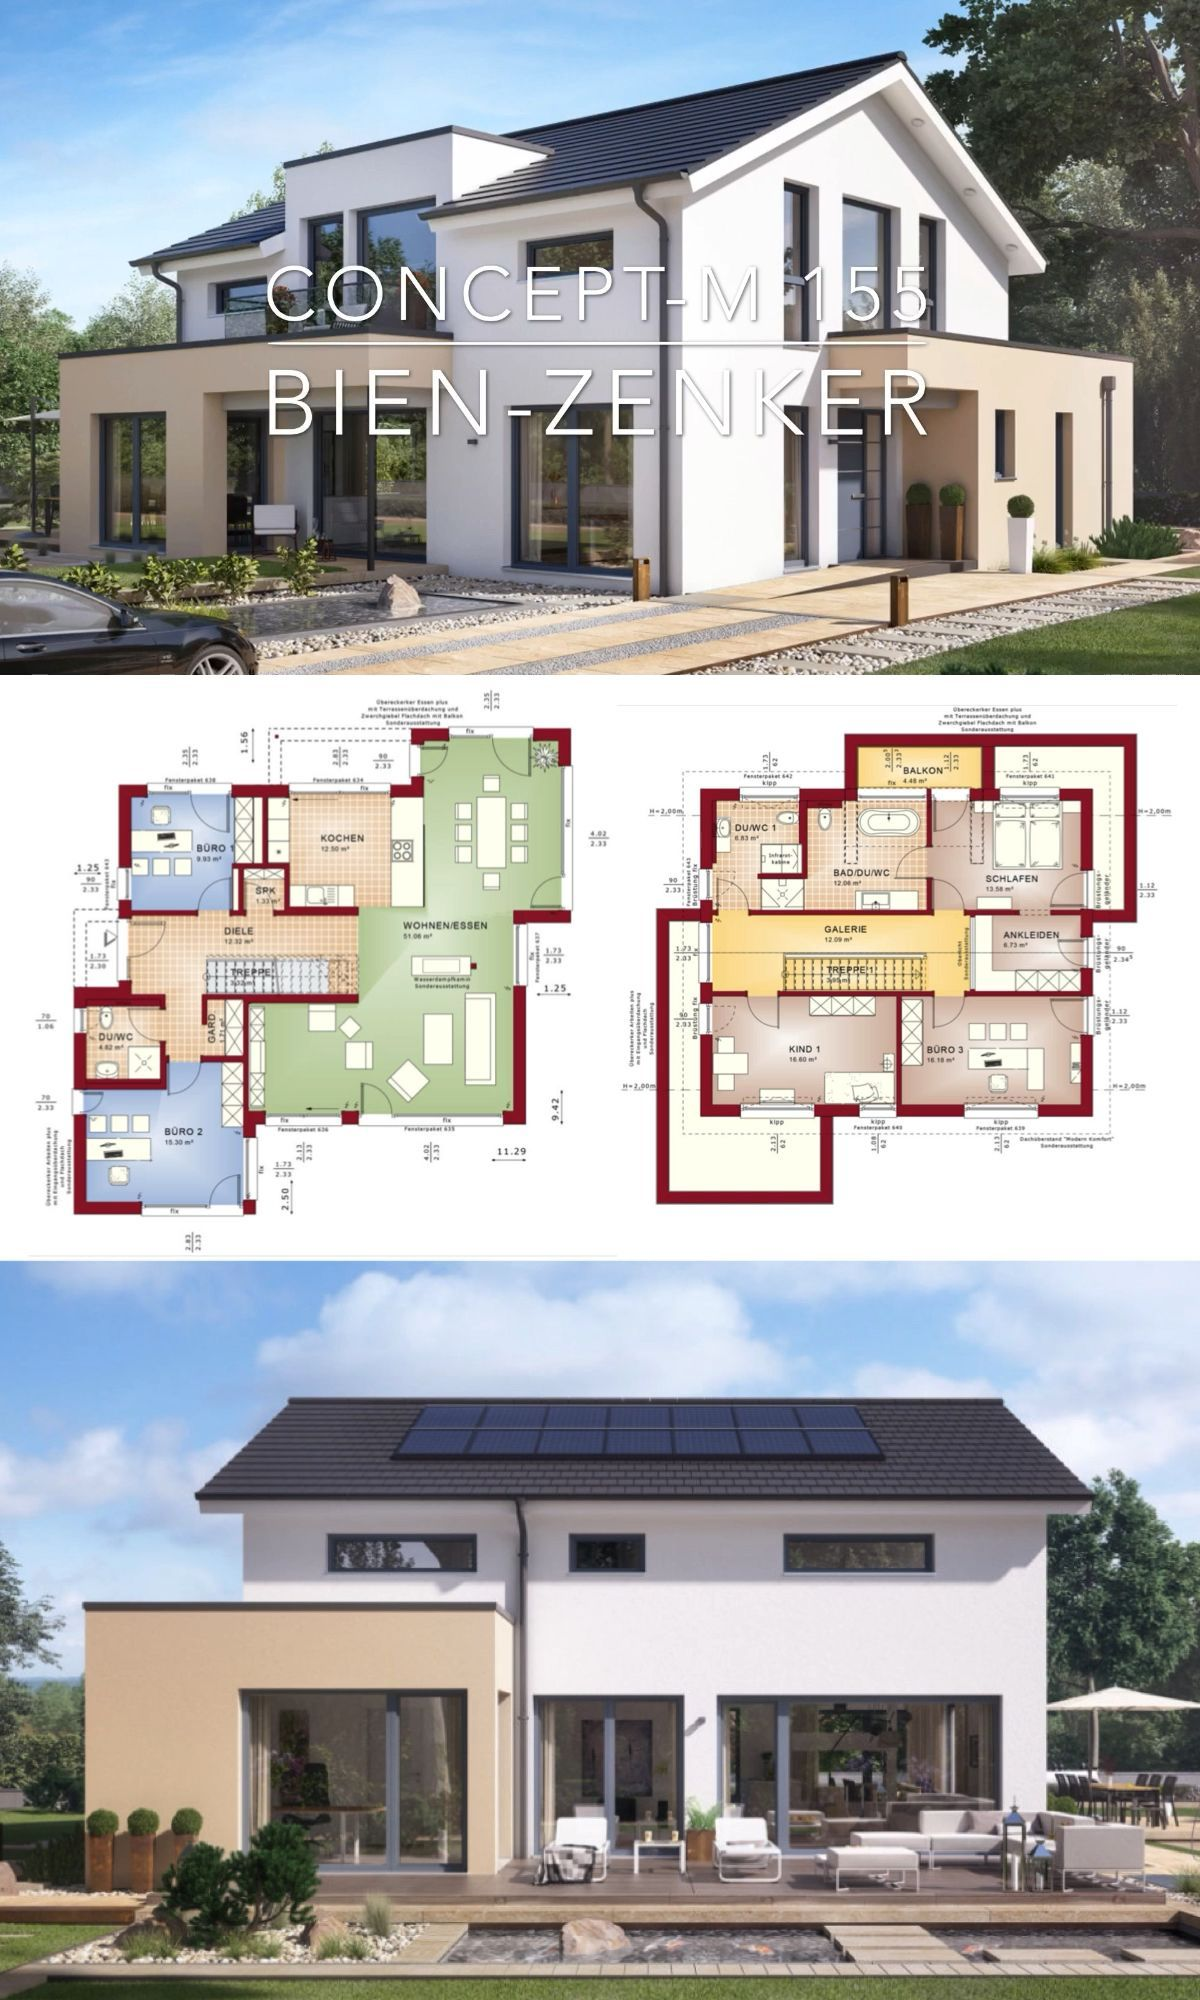 Home Design Plan 13x18m With 5 Bedrooms Home Ideas 13x18m Bedrooms Design Home Ideas P In 2020 House Construction Plan Duplex House Design House Layout Plans